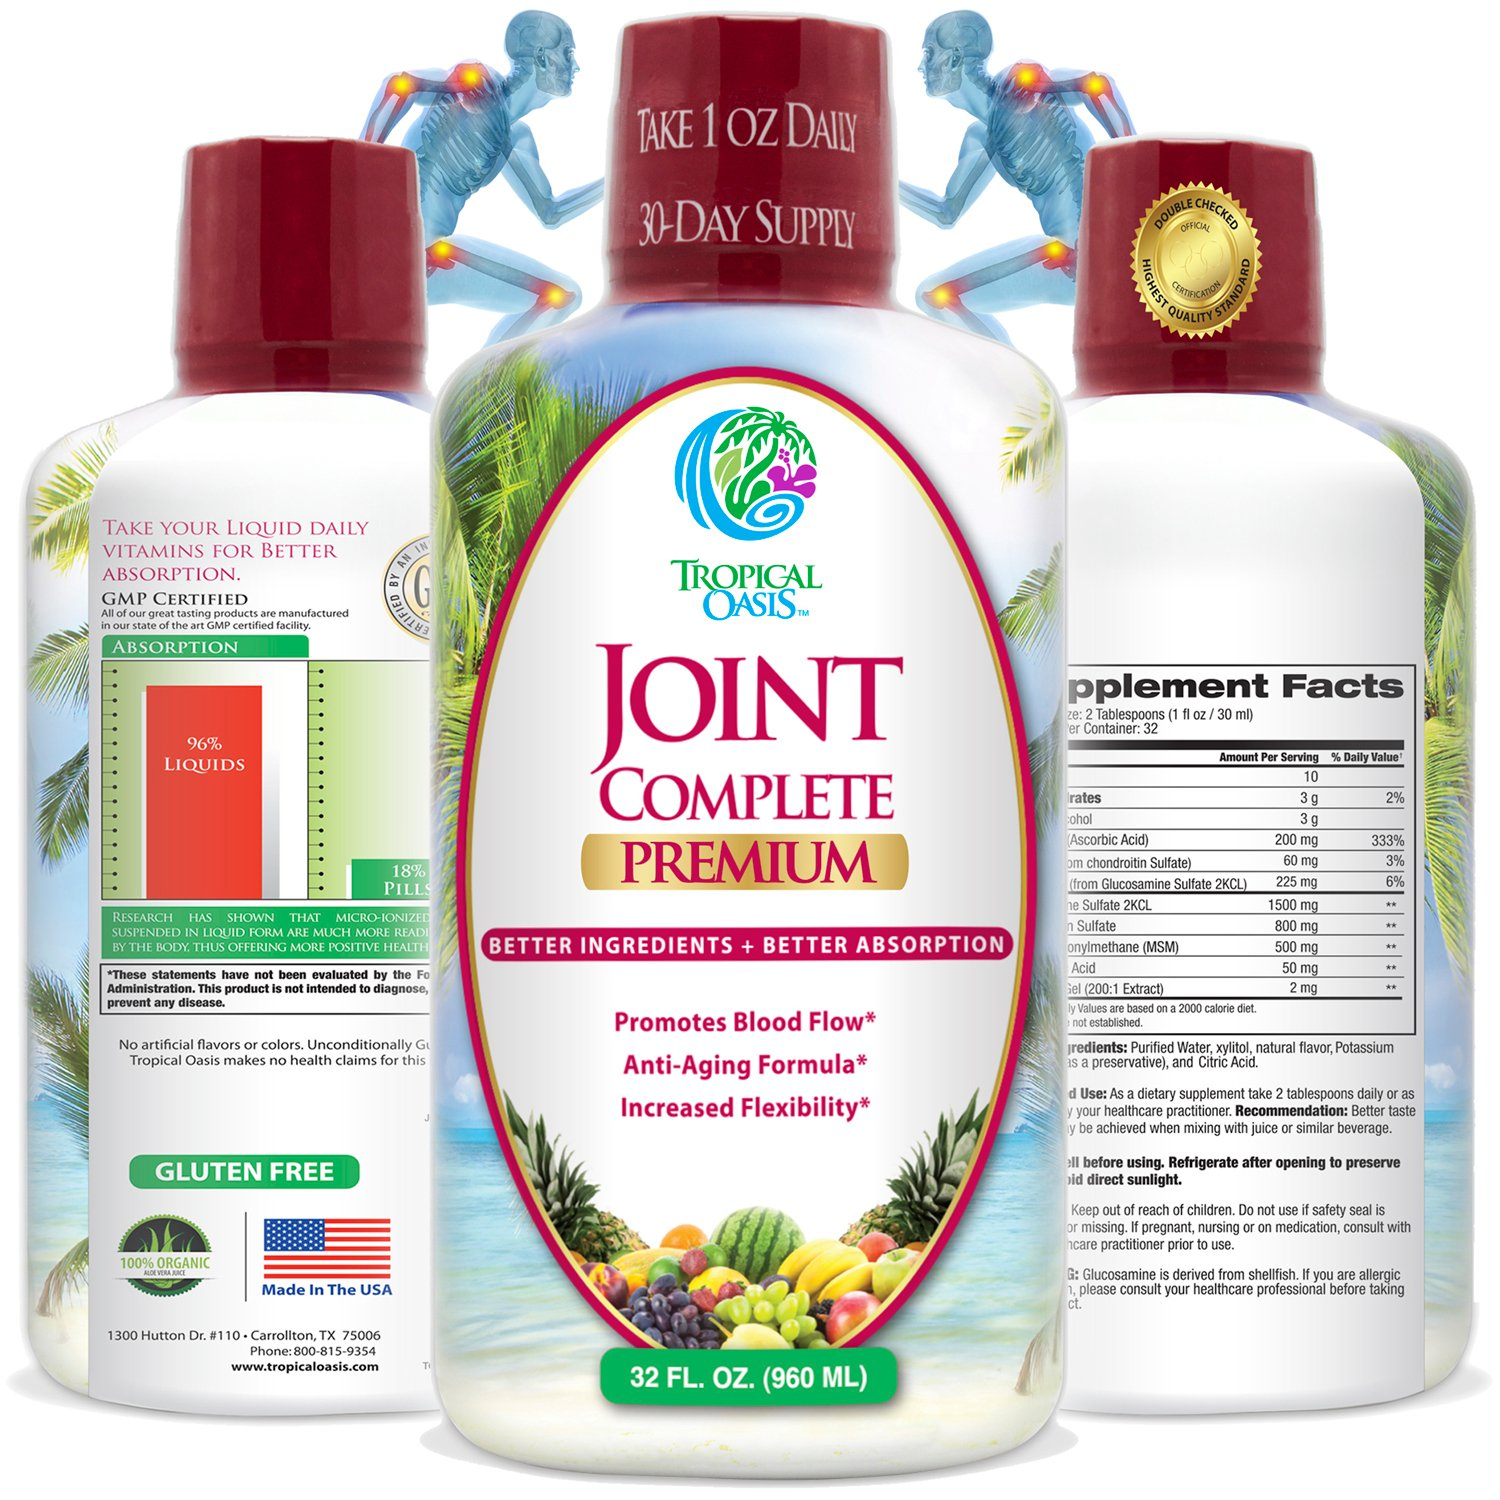 Joint Complete Premium - Liquid Joint Supplement with Liquid Glucosamine Sulfate, Chondroitin, MSM & Hyaluronic Acid - For Bone, Joint Health, & Joint Pain Relief - 96% Max Absorption- 32oz, 32 serv by Tropical Oasis